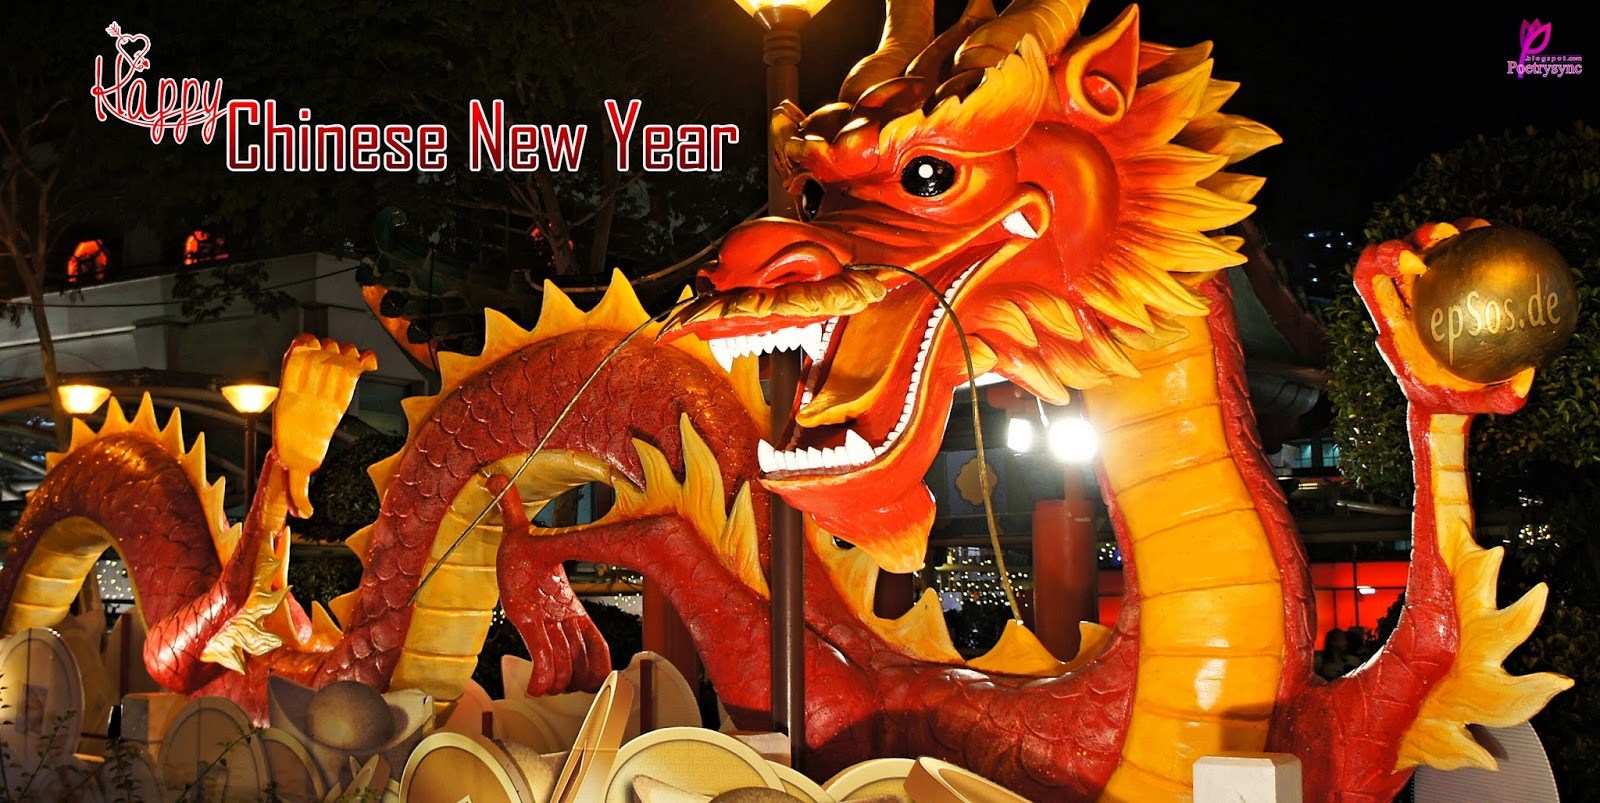 Happy Chinese New Year Wishes and Greetings Happy Lunar New Year 2014 1600x803